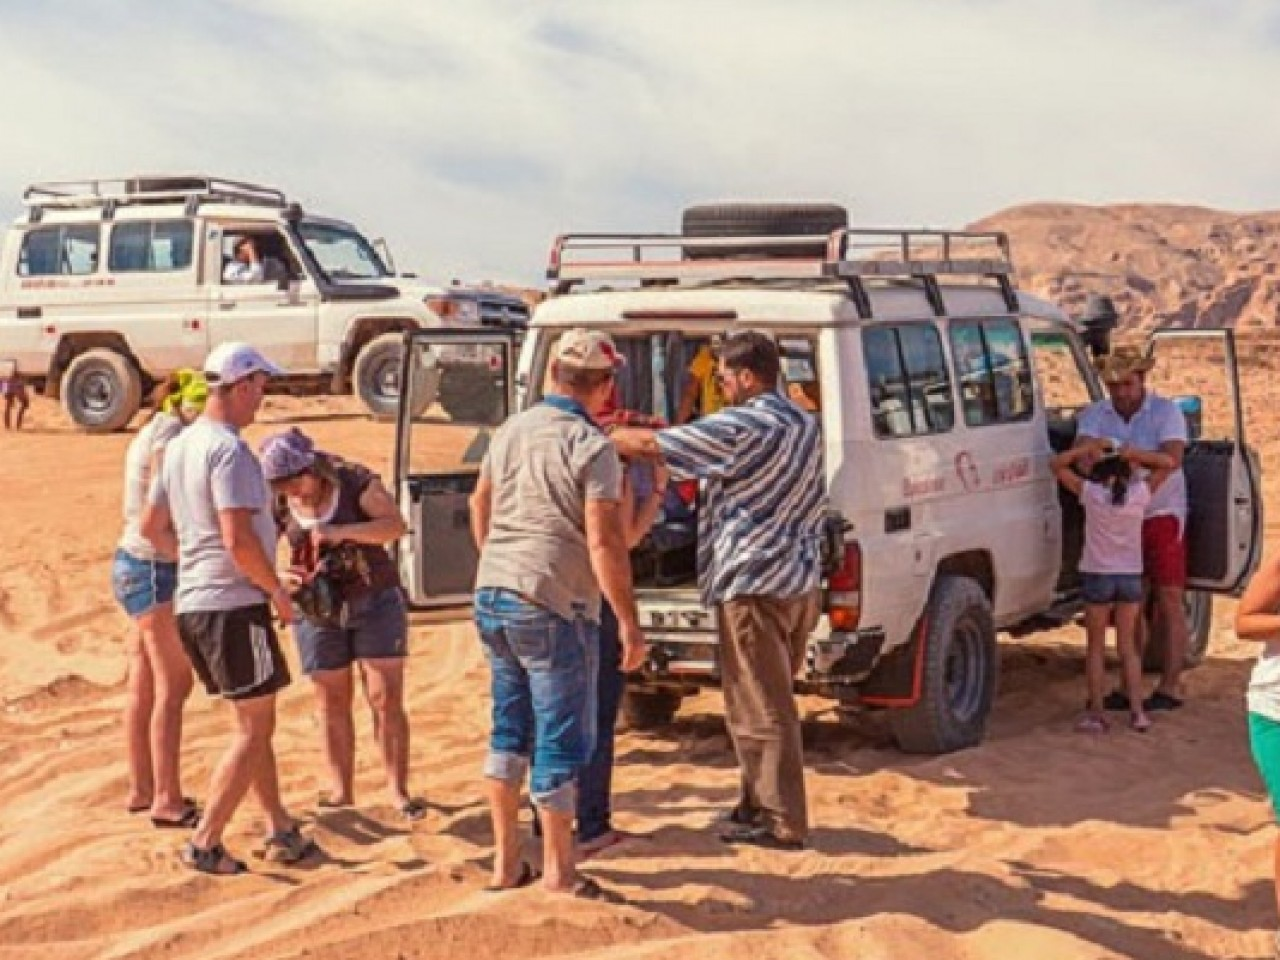 Jeep Safari, Camel Rides, Bedouin Village and BBQ